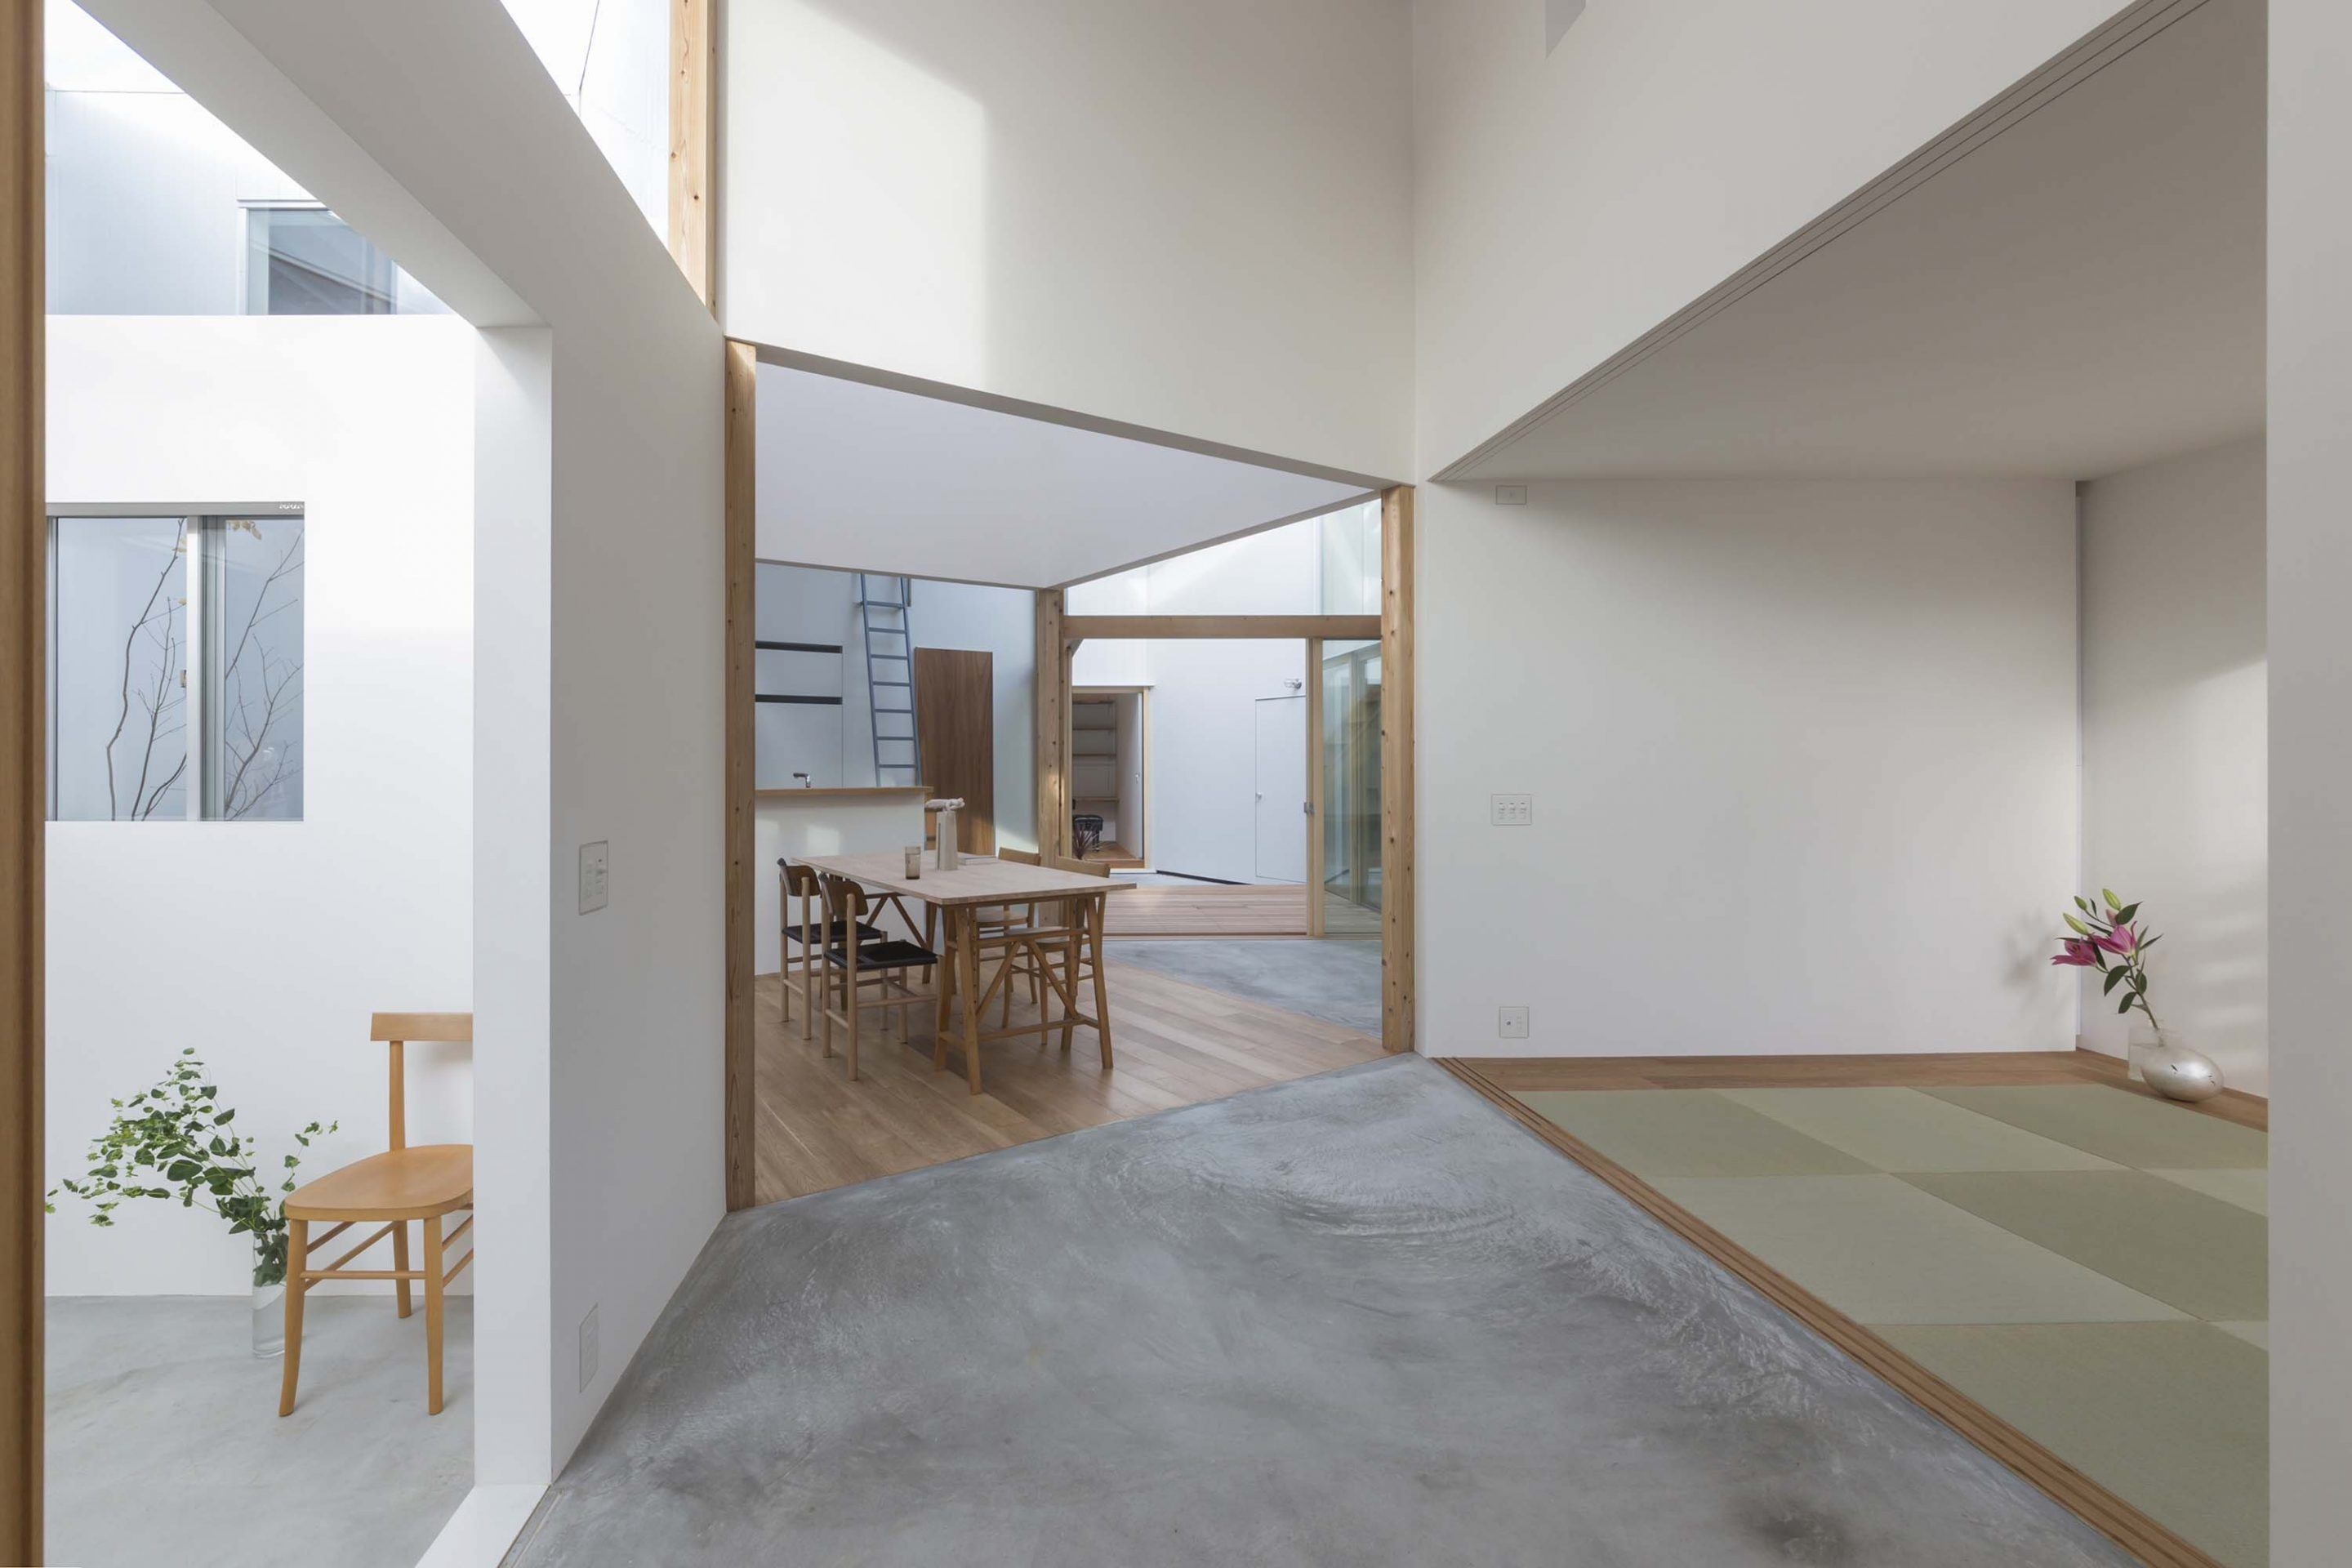 IGNANT-Architecture-Tato-Architects-House-In-Hokusetsu-5